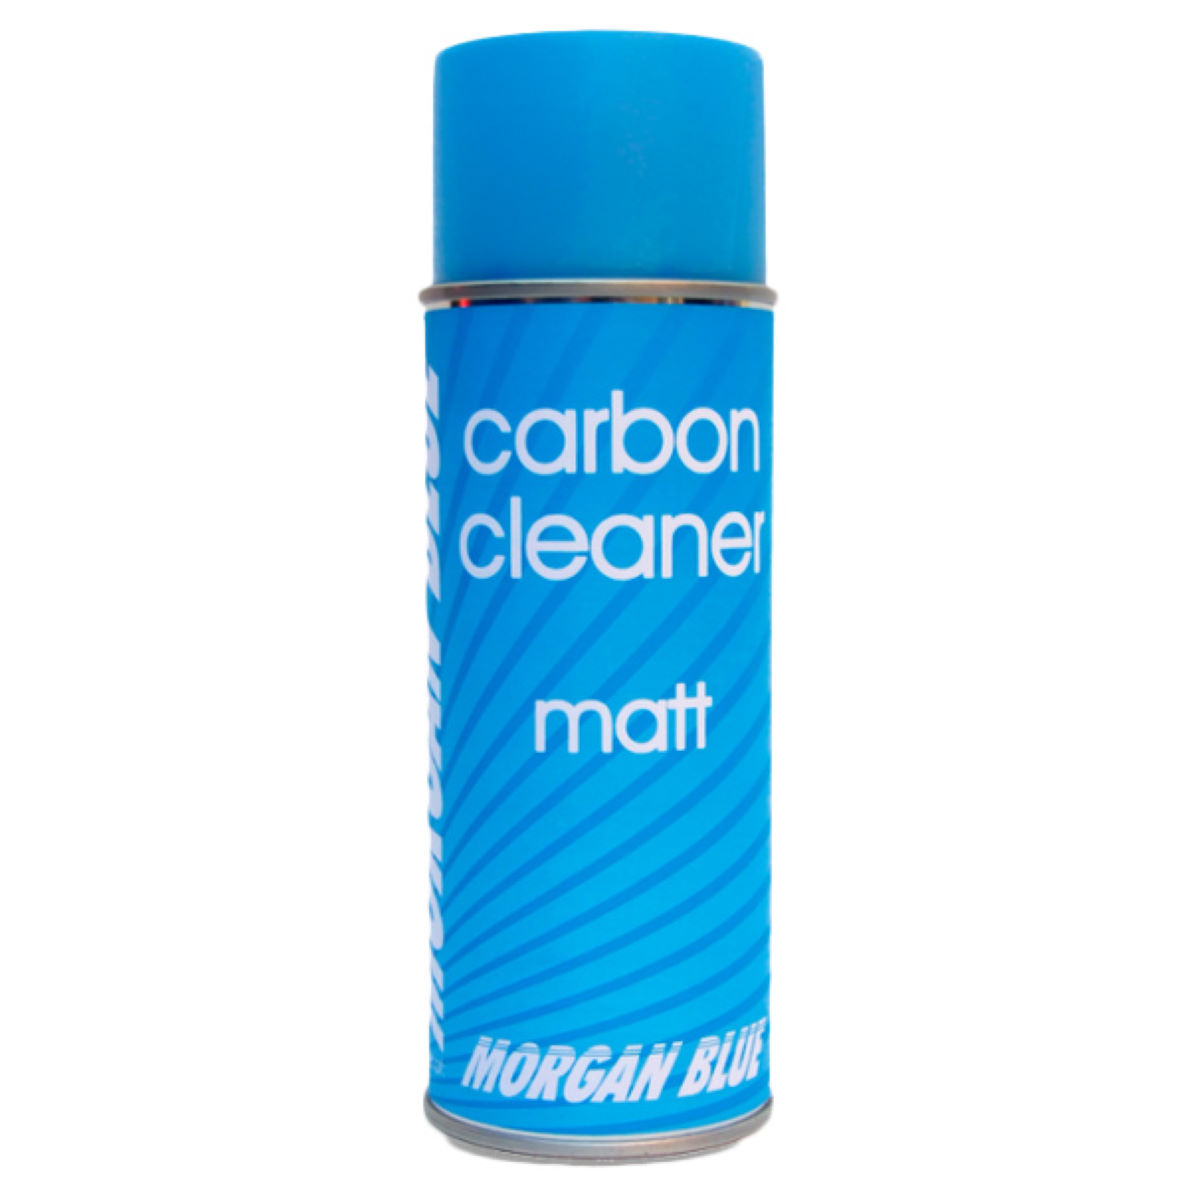 Morgan Blue Morgan Blue Carbon Cleaner - Matt Finish   Cleaning Products